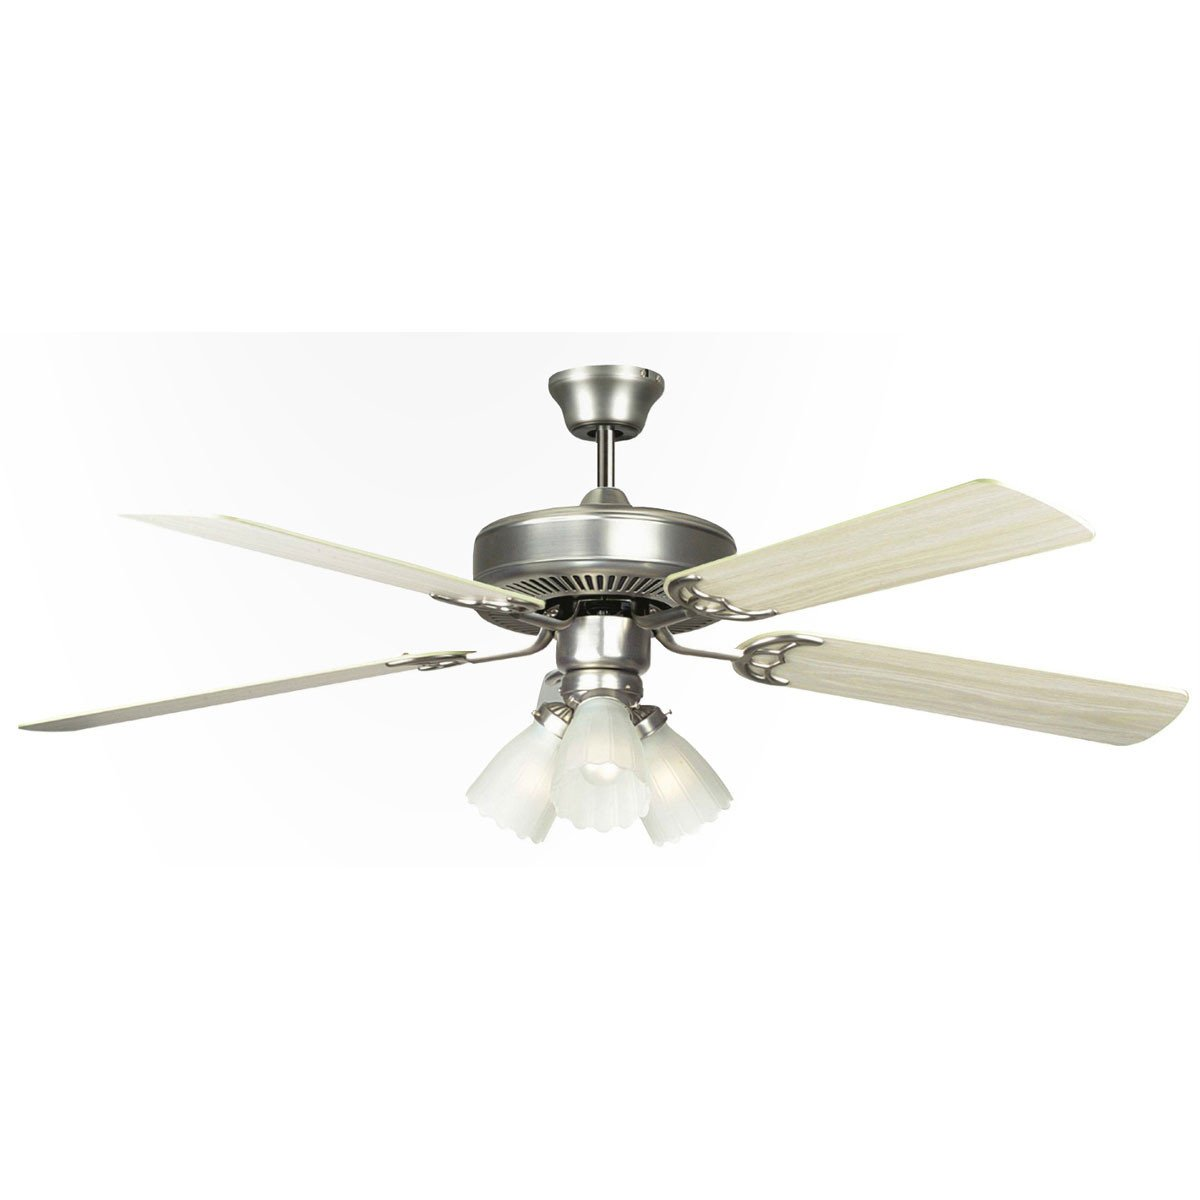 "Concord Fans 52"" Home Air Satin Nickel Modern Ceiling Fan with 3 Lights Kit"